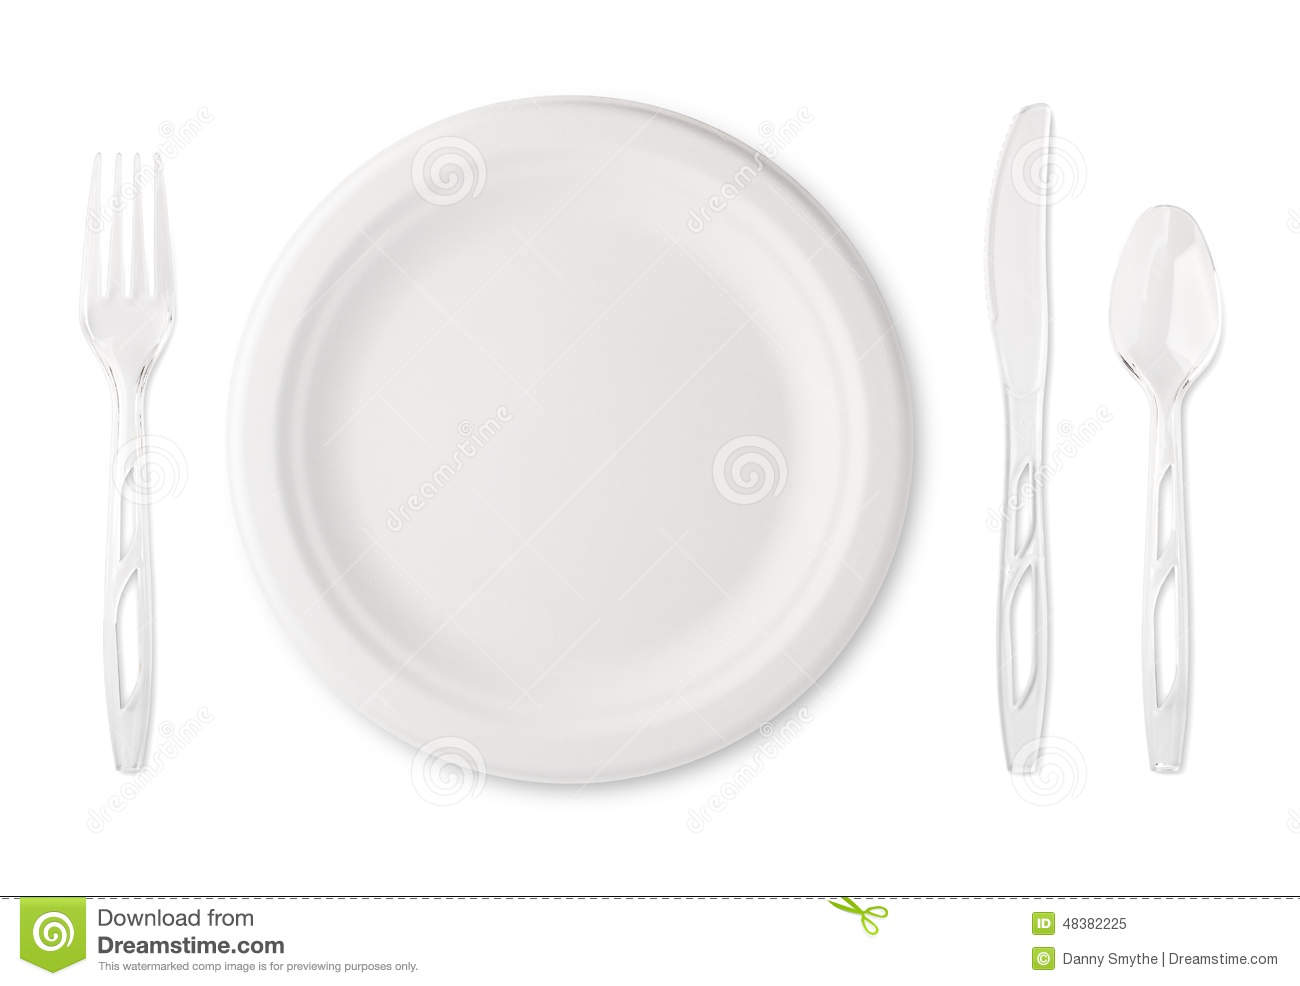 "Wedding Tableware: Plates, Cups & Wedding Table Settings "" ( total) Complement the wedding ceremony decor with supplies from our wide selection of wedding tableware: plastic or paper wedding cups, napkins, plates for inspired wedding table settings."